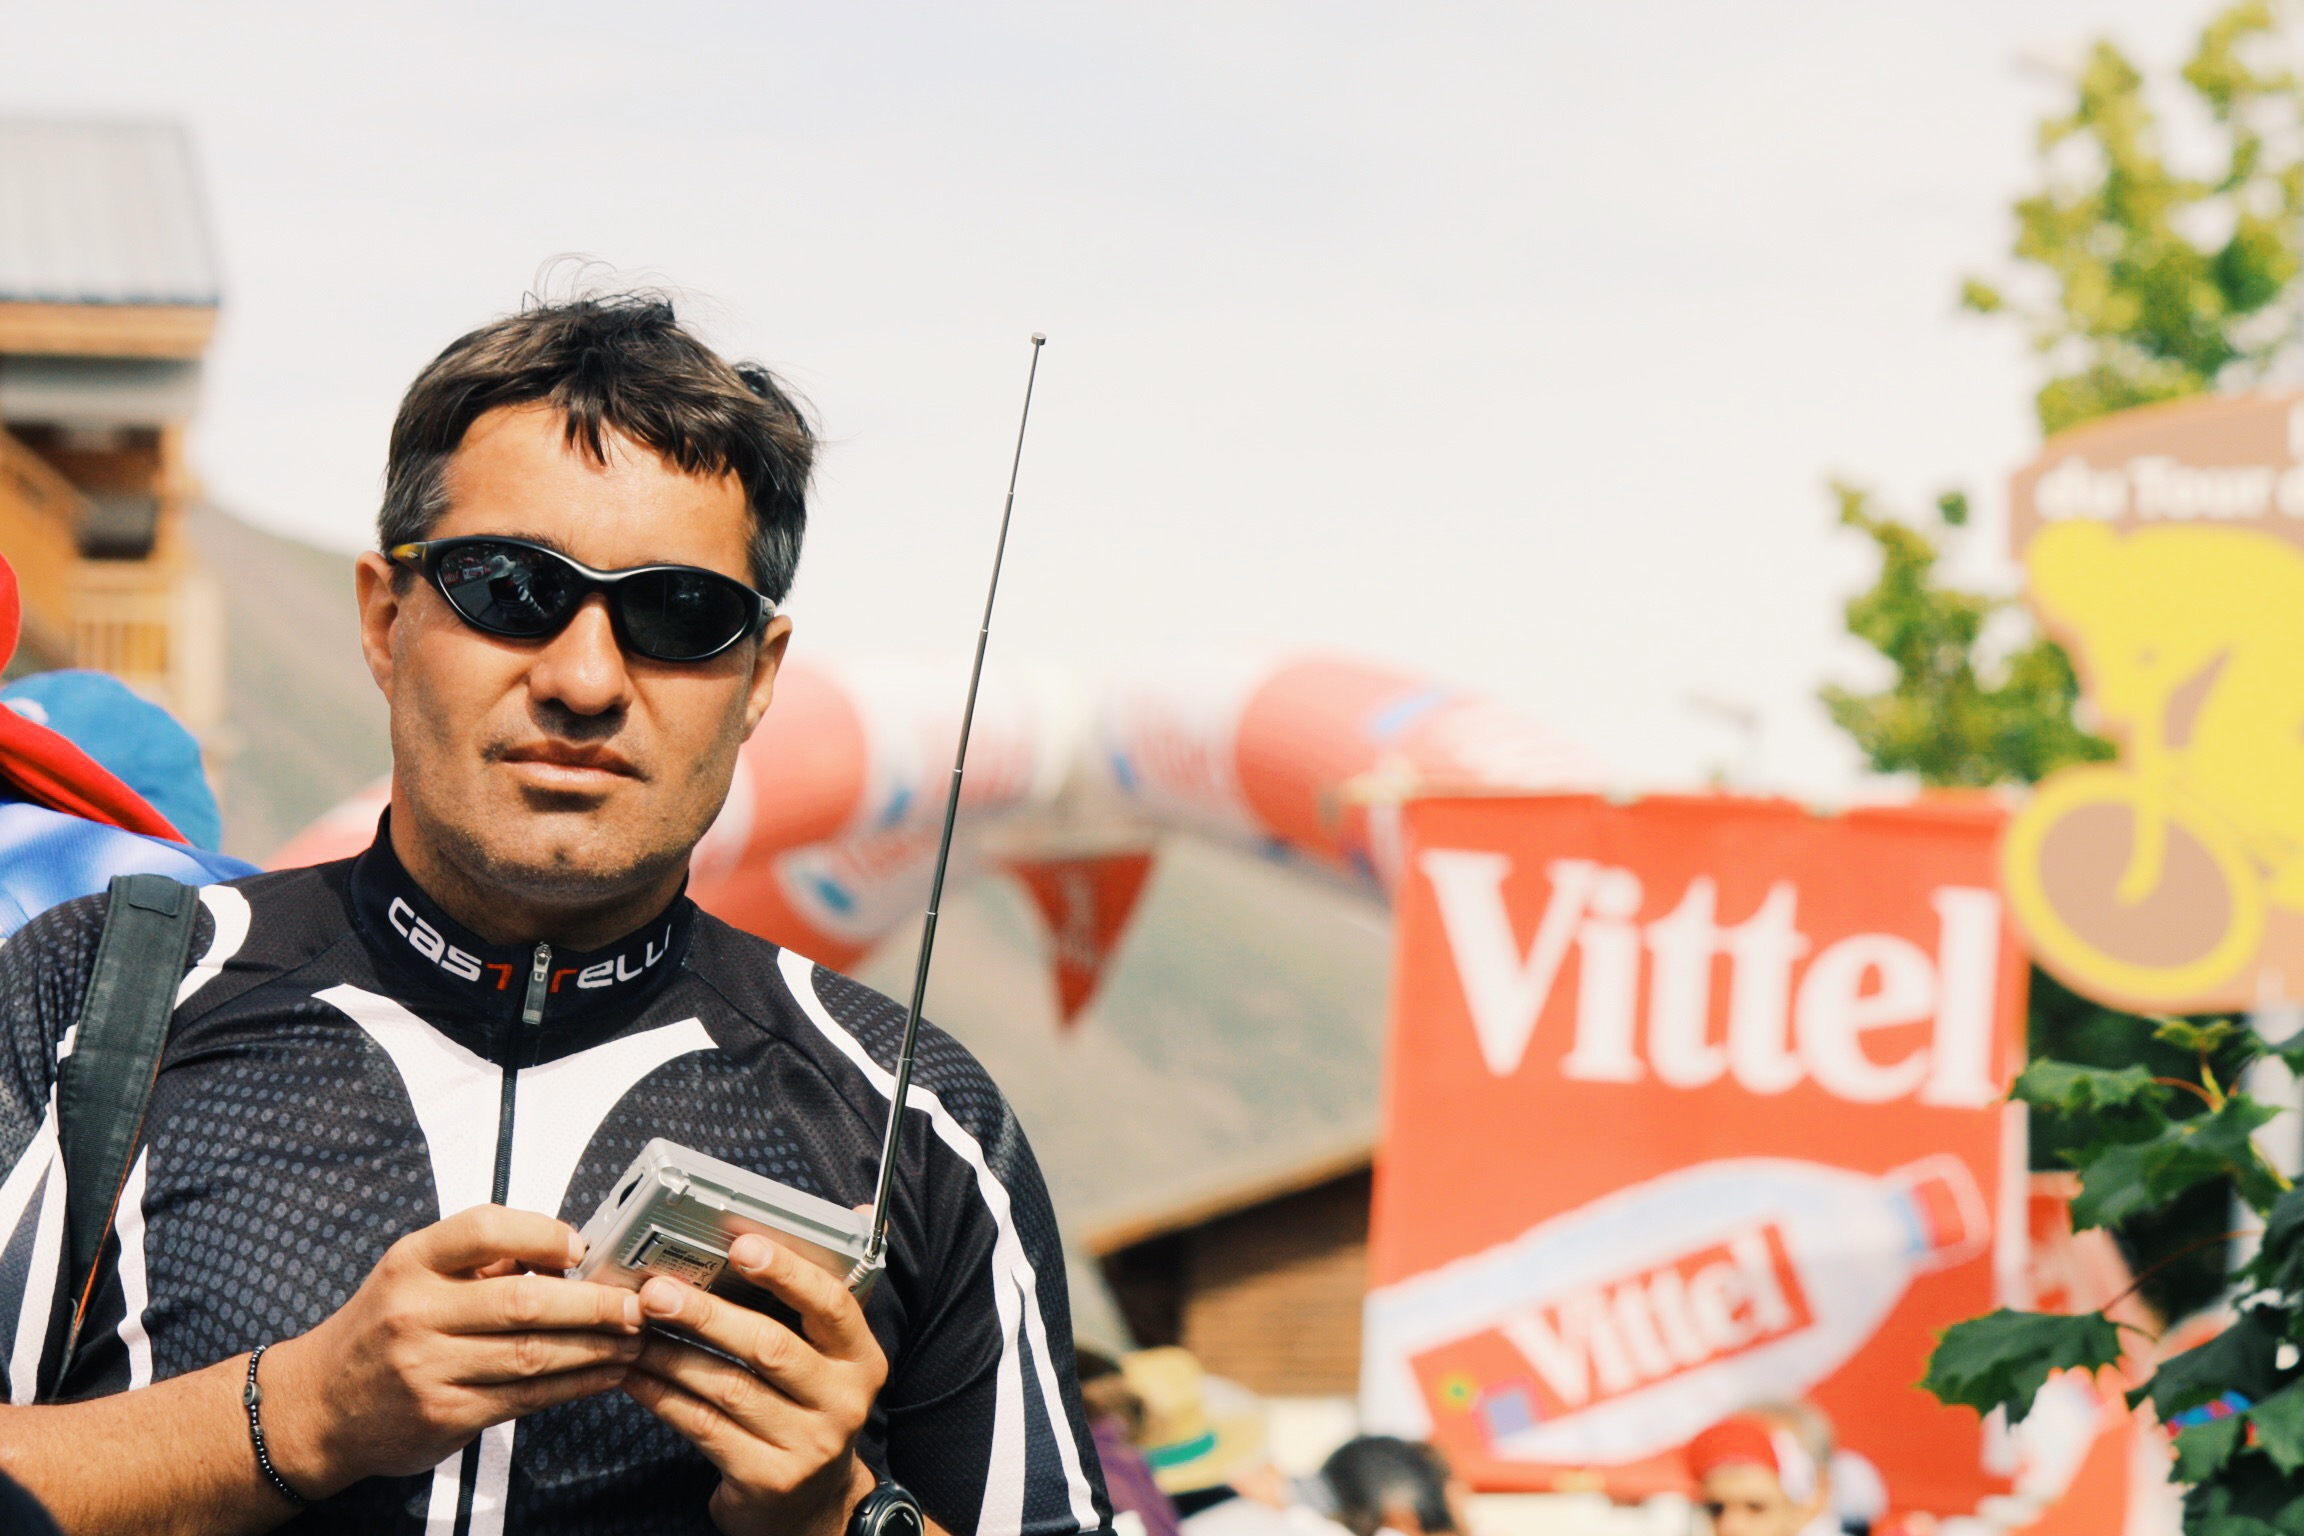 Tuning to Radio Tour at the Alpe D'Huez